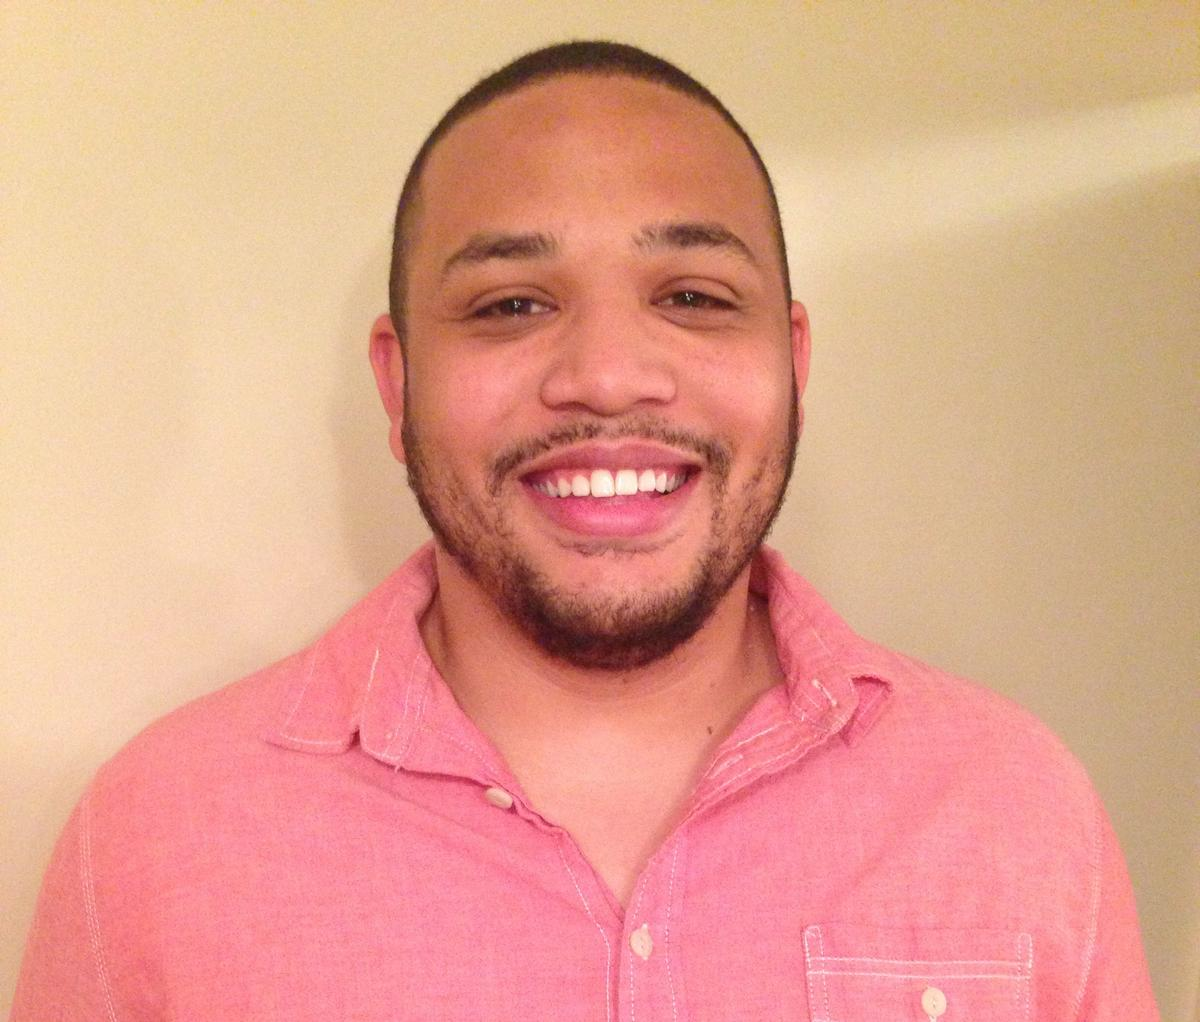 This Cincinnati startup wants to take on Craigslist and ...